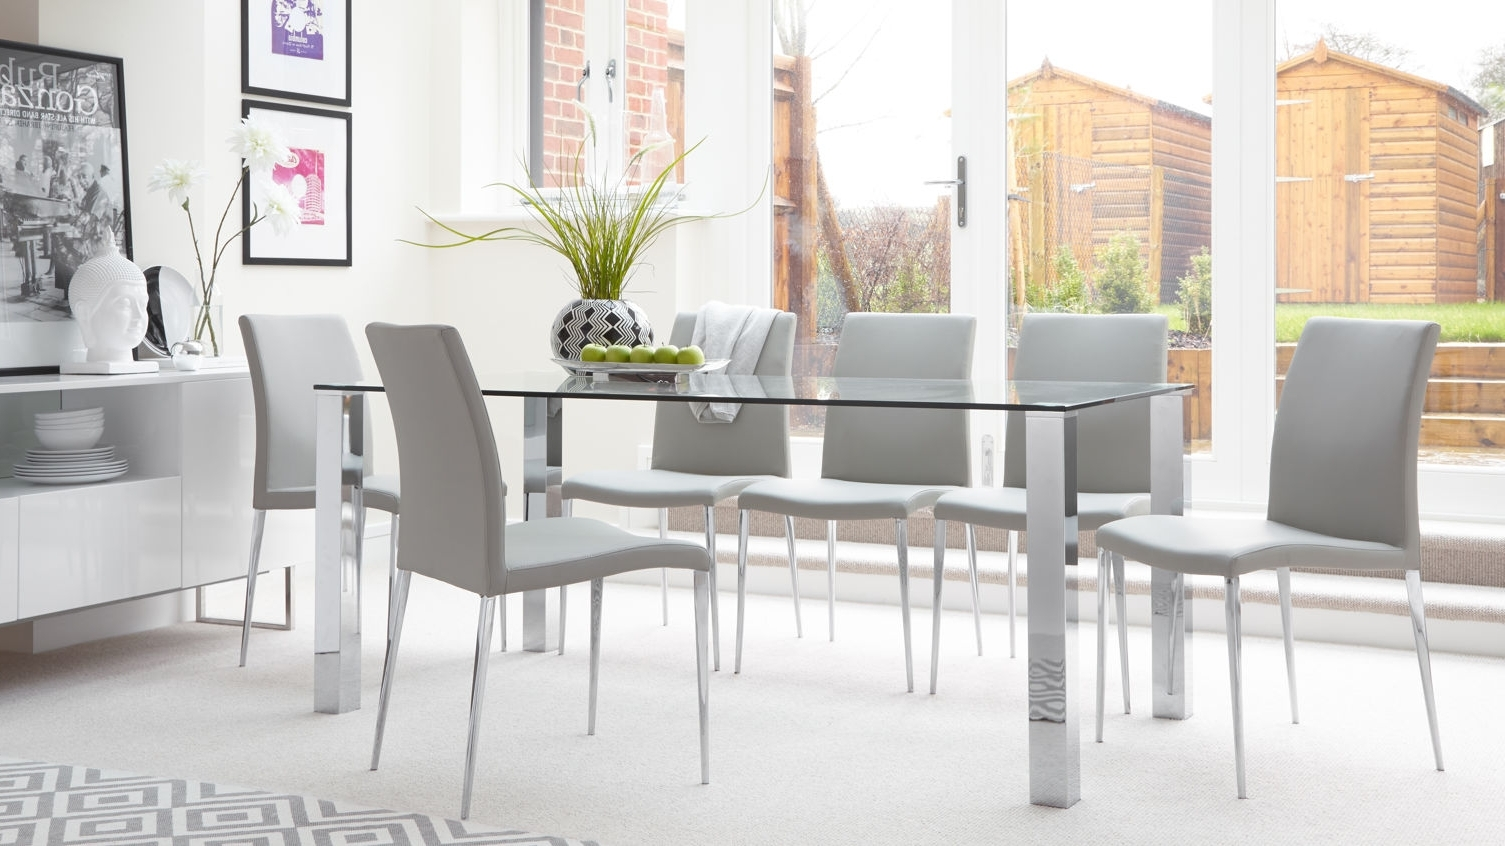 2017 Glass Top Dining Table With 8 Chairs – Glass Decorating Ideas Pertaining To 8 Seater White Dining Tables (Gallery 16 of 25)